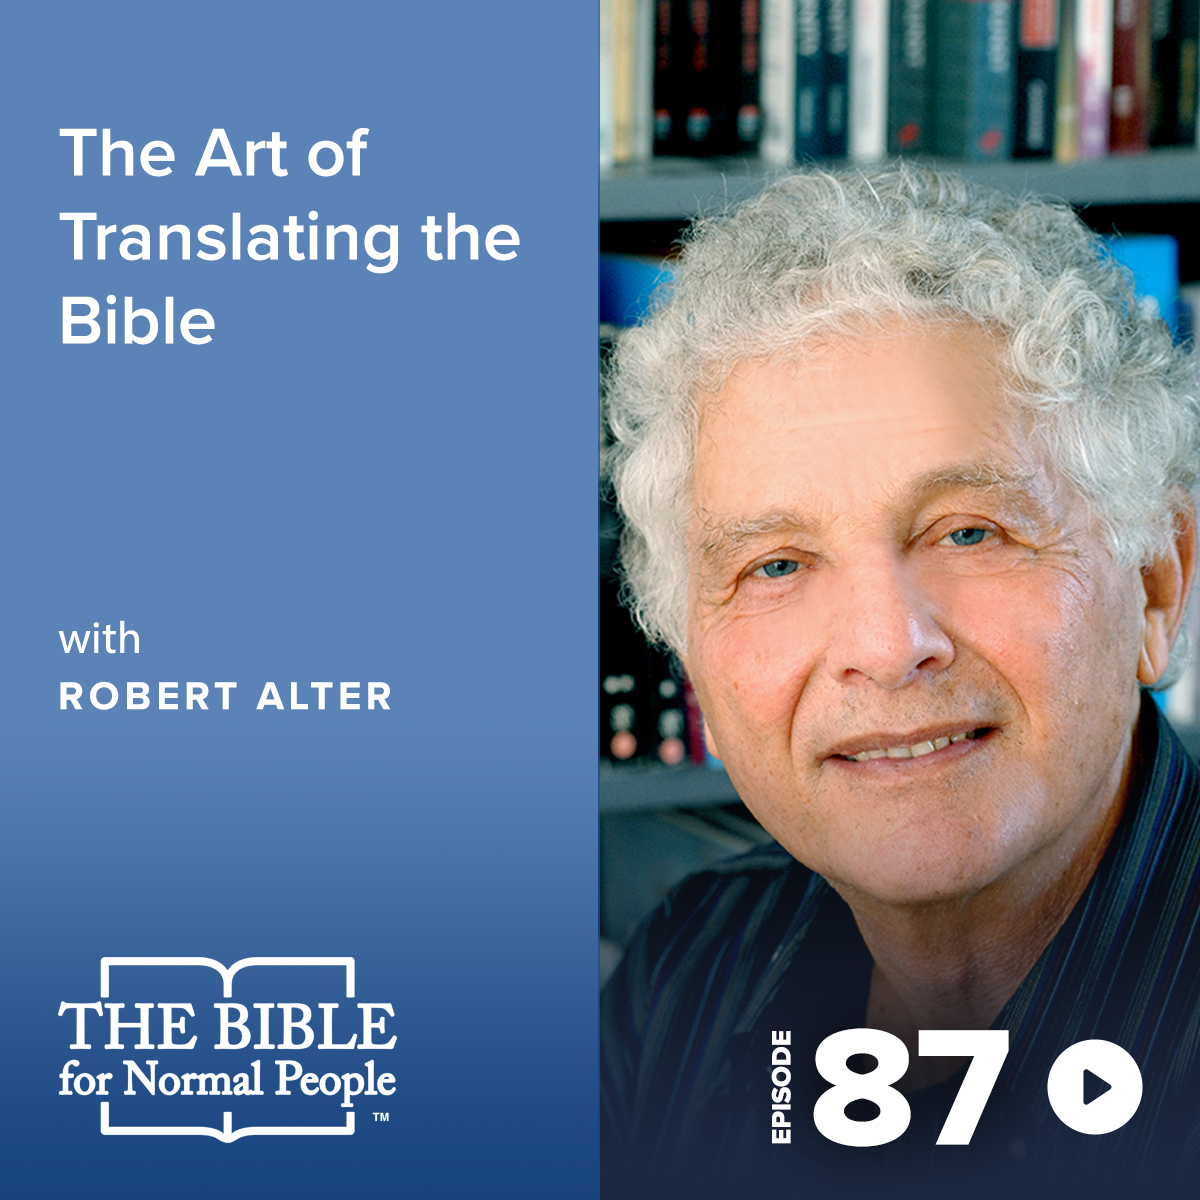 Episode 87: Robert Alter - The Art of Translating the Bible